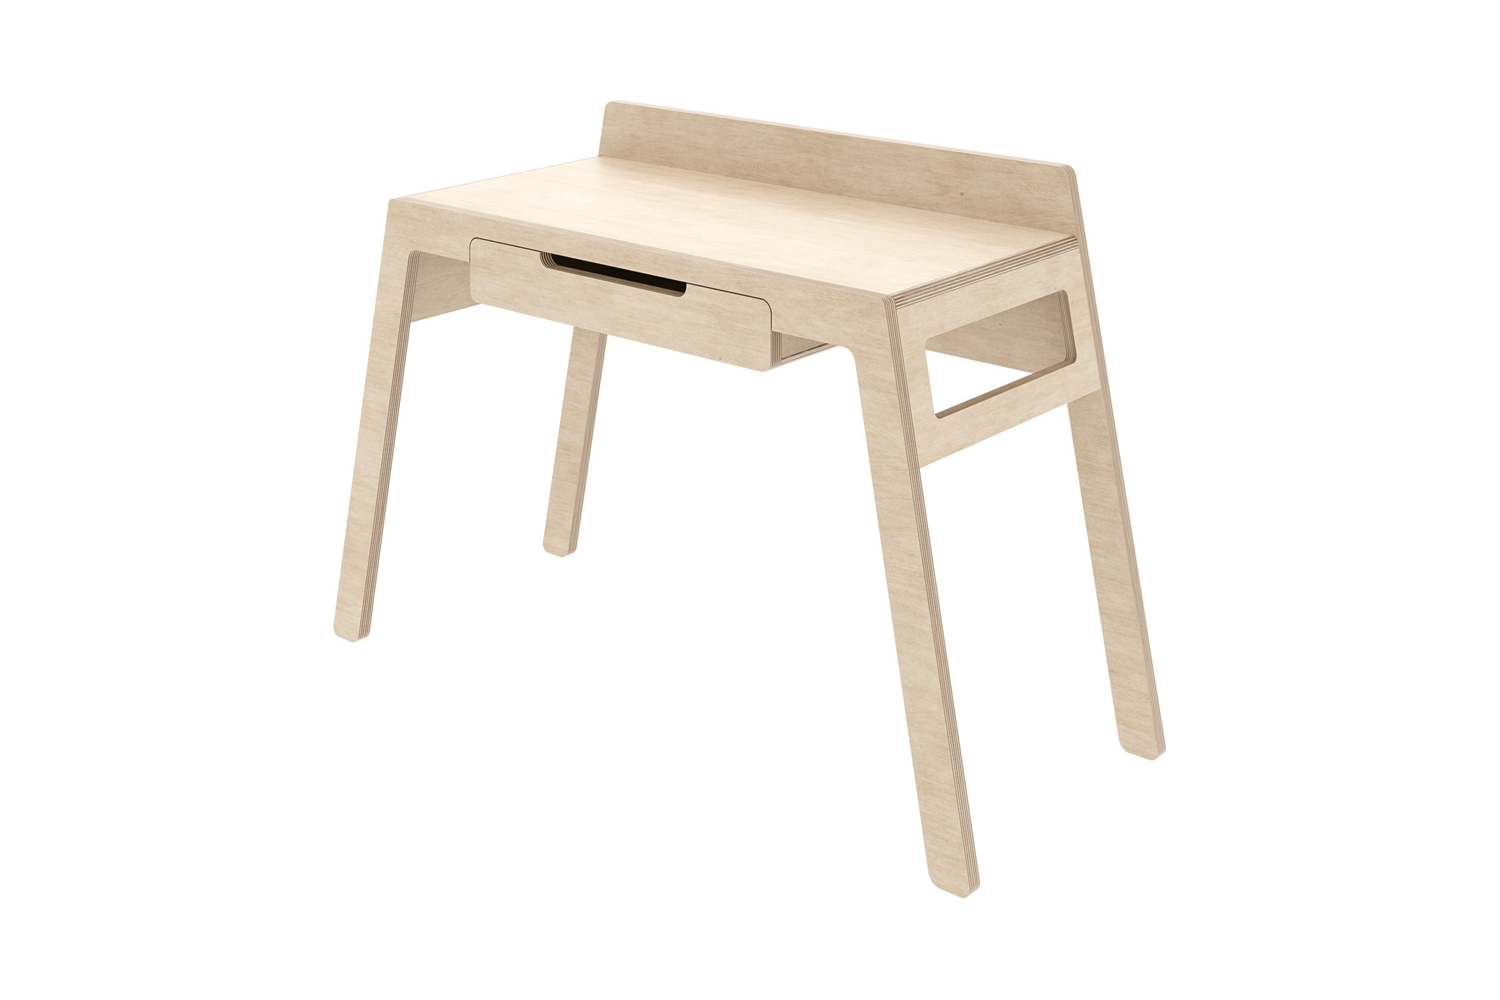 The Nuki Flex Handy Desk is made of birch plywood for $79loading=